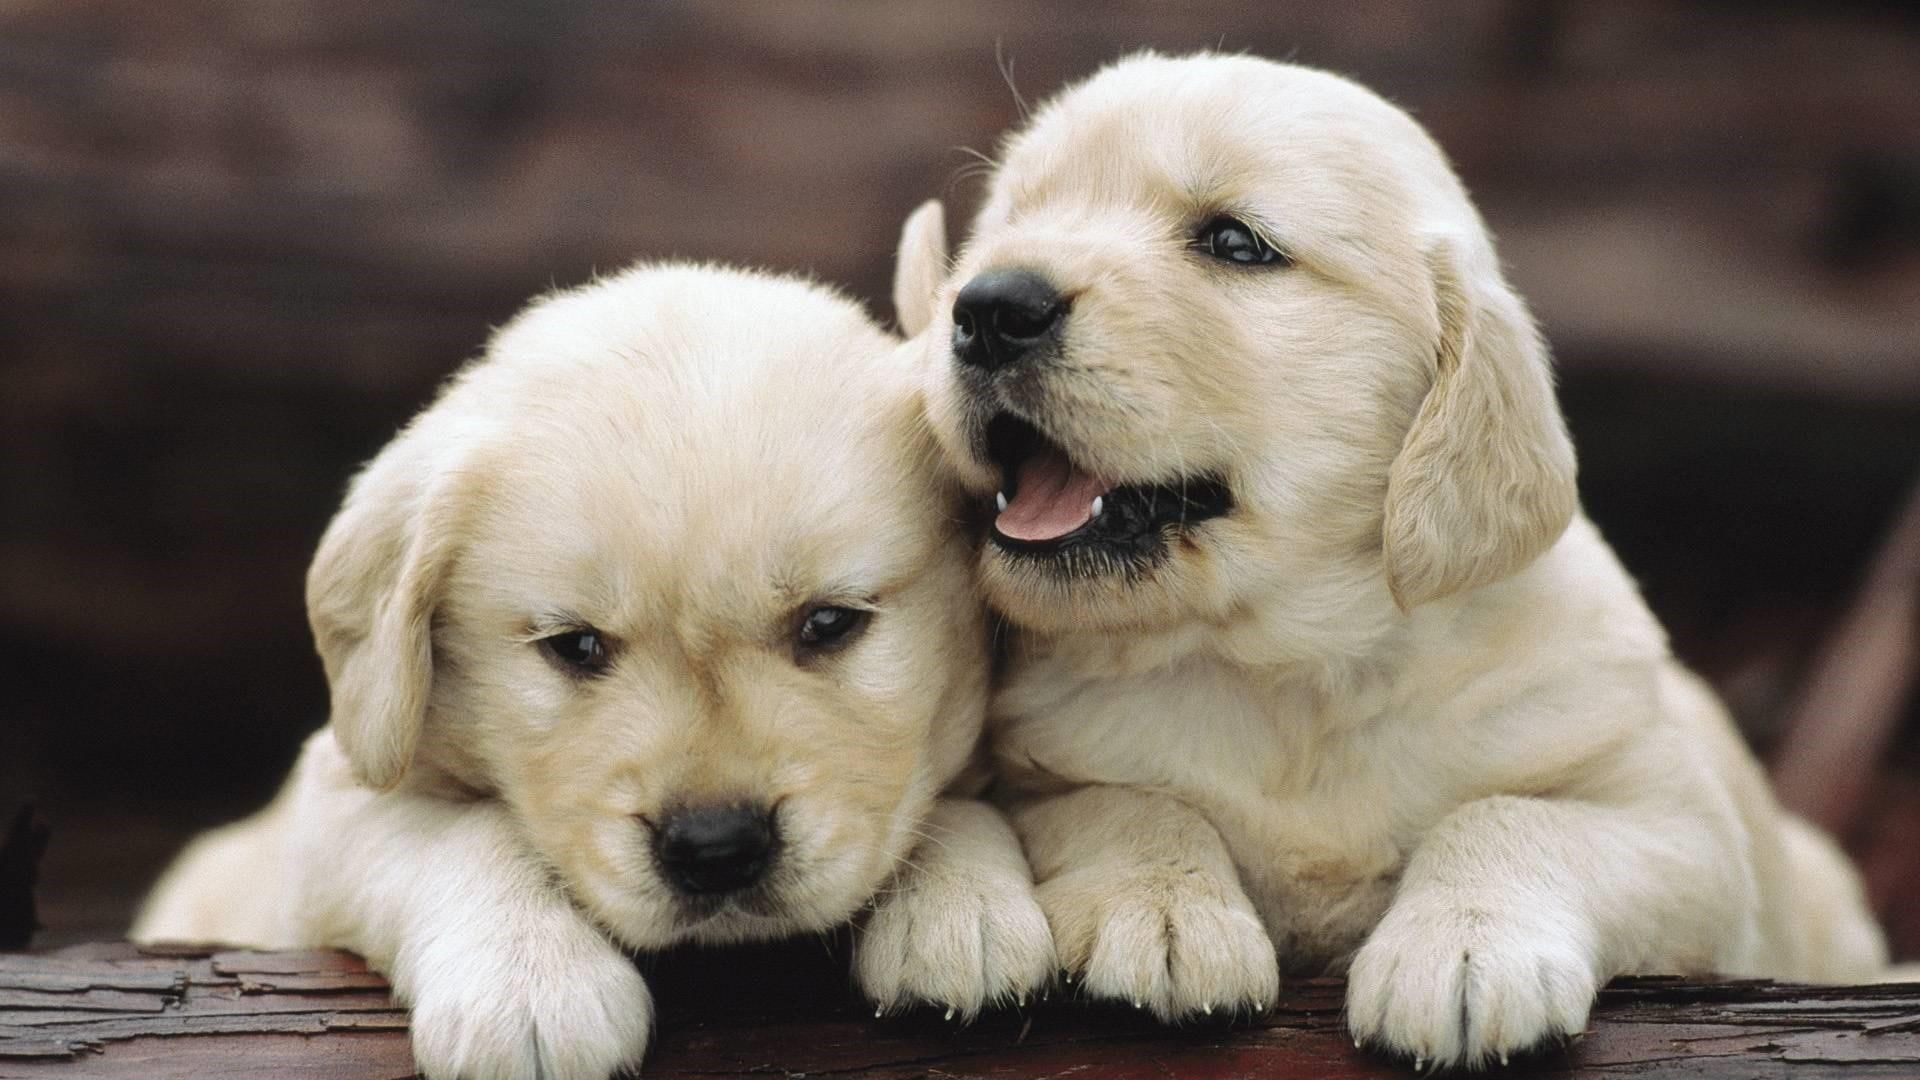 Cute Puppy Wide Desktop Background Wallpapers Hd Free 578005 Cute Puppy Wallpaper Cute Dog Wallpaper Cute Baby Dogs